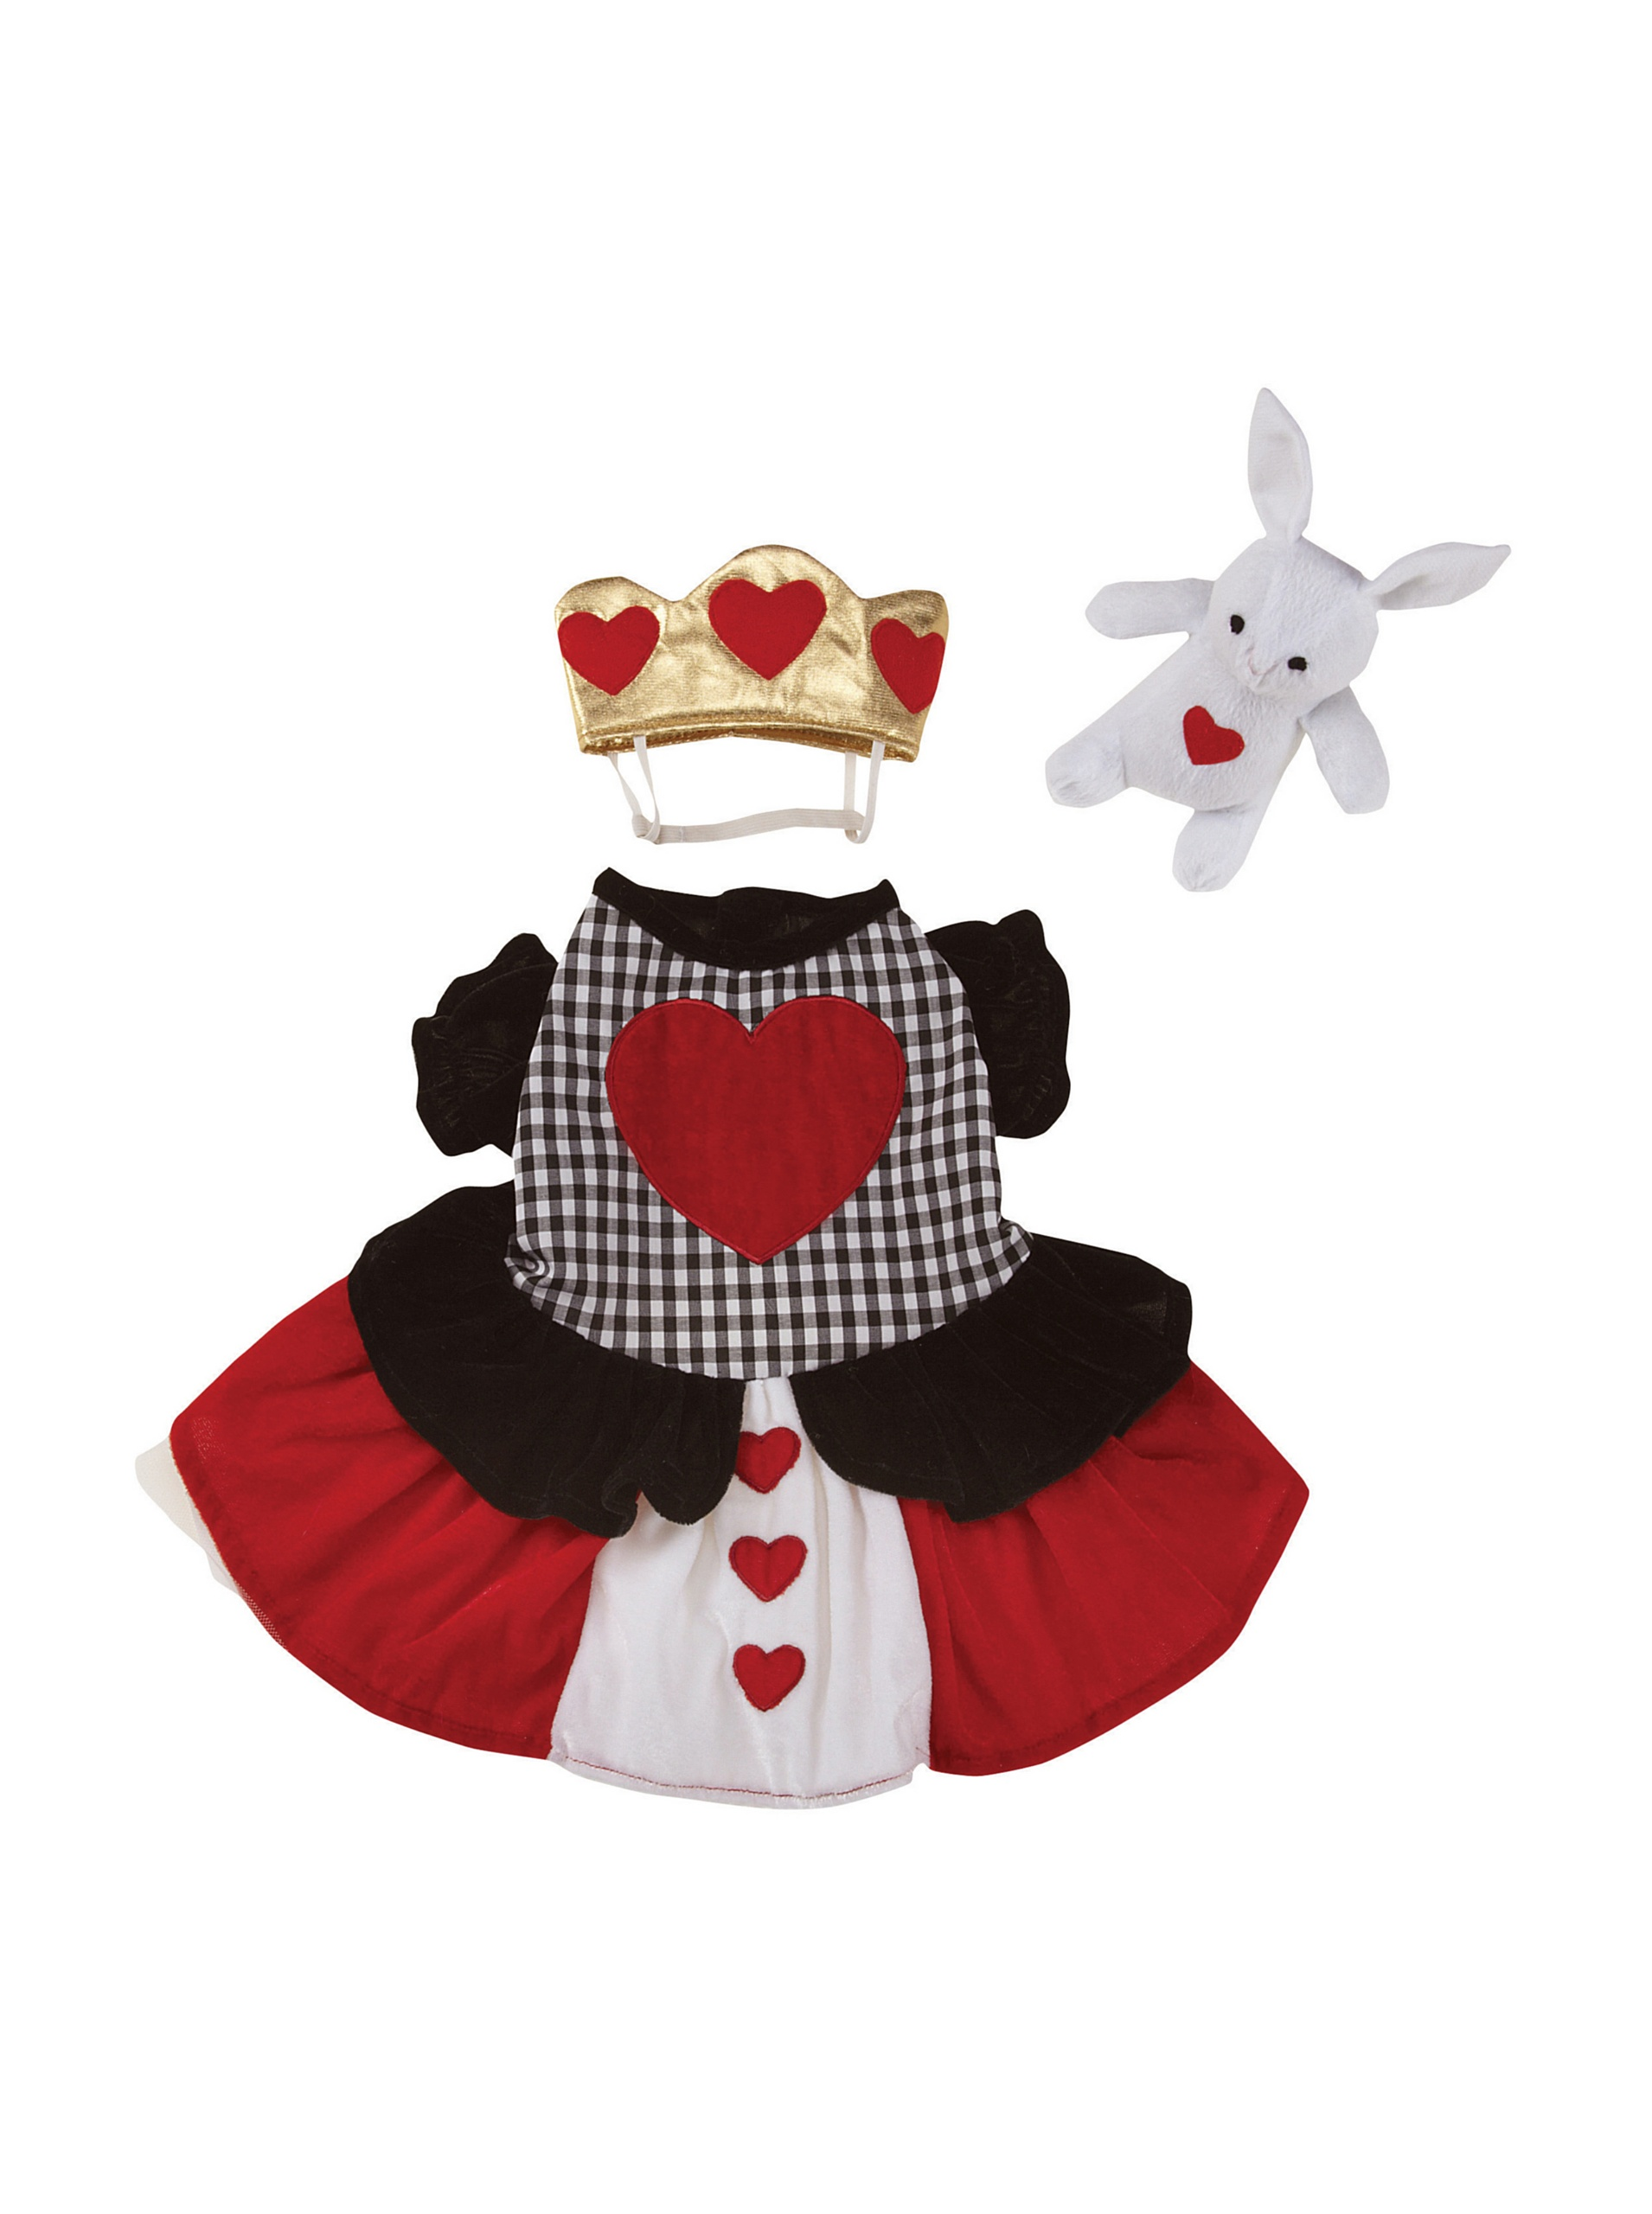 Casual Canine Queen Of Hearts Alice In Wonderland Type Halloween Dog Costume with White Rabbit Bunny Toy X-Large by Casual Canine